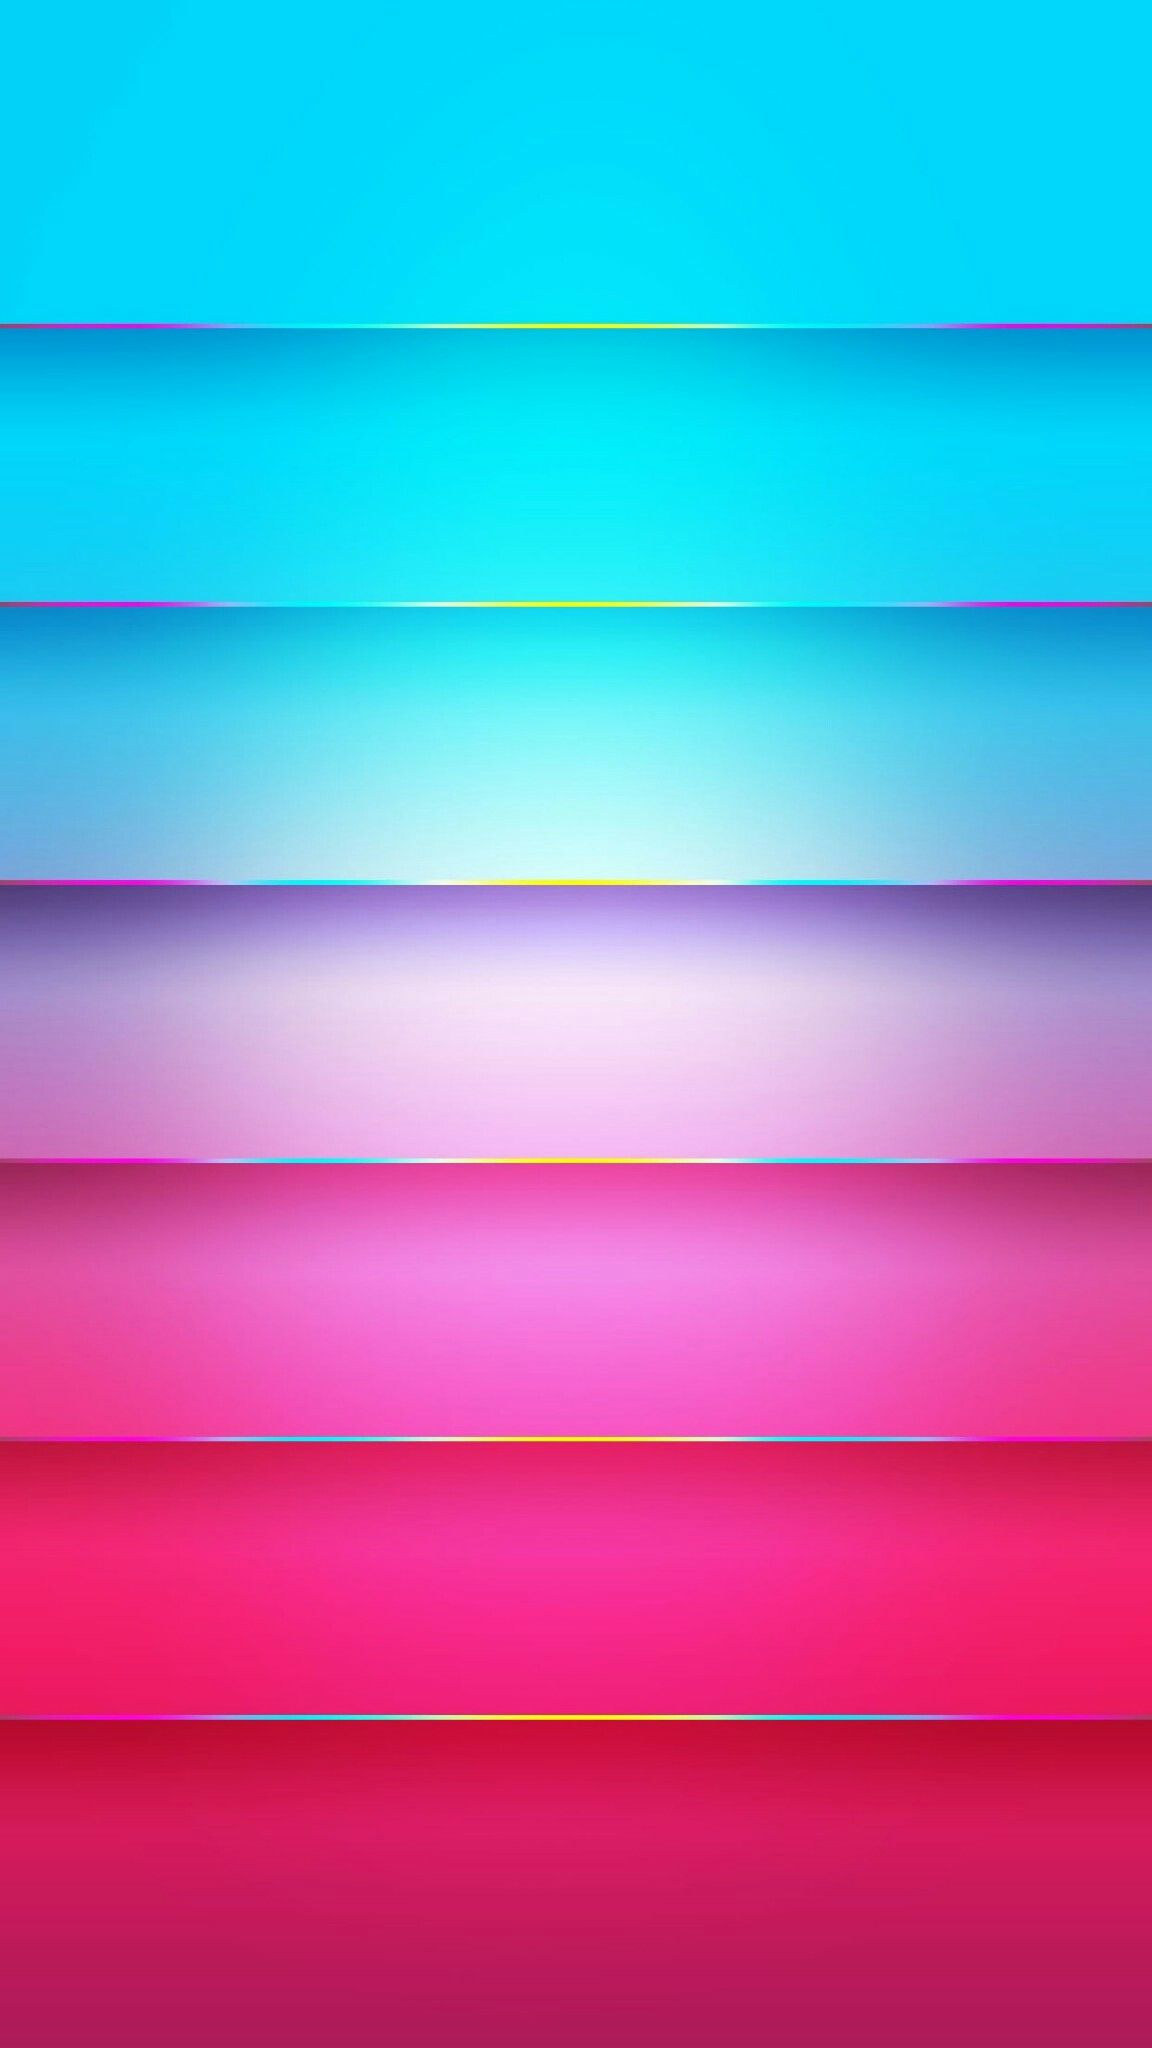 ColorBlocking Neon Wallpaper Wallpaper shelves